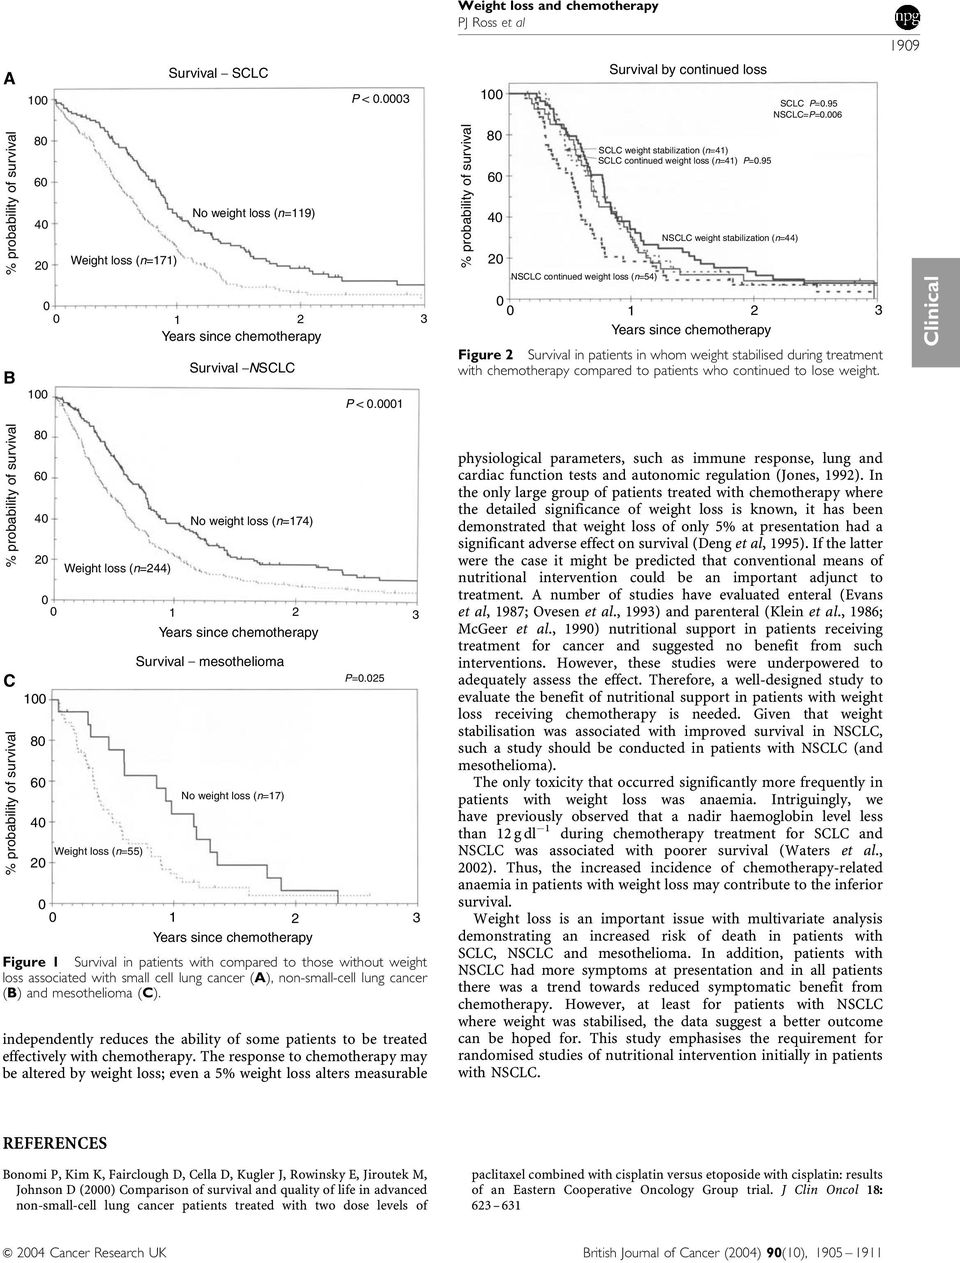 006 0 0 1 2 3 Figure 2 Survival in patients in whom weight stabilised during treatment with chemotherapy compared to patients who continued to lose weight.